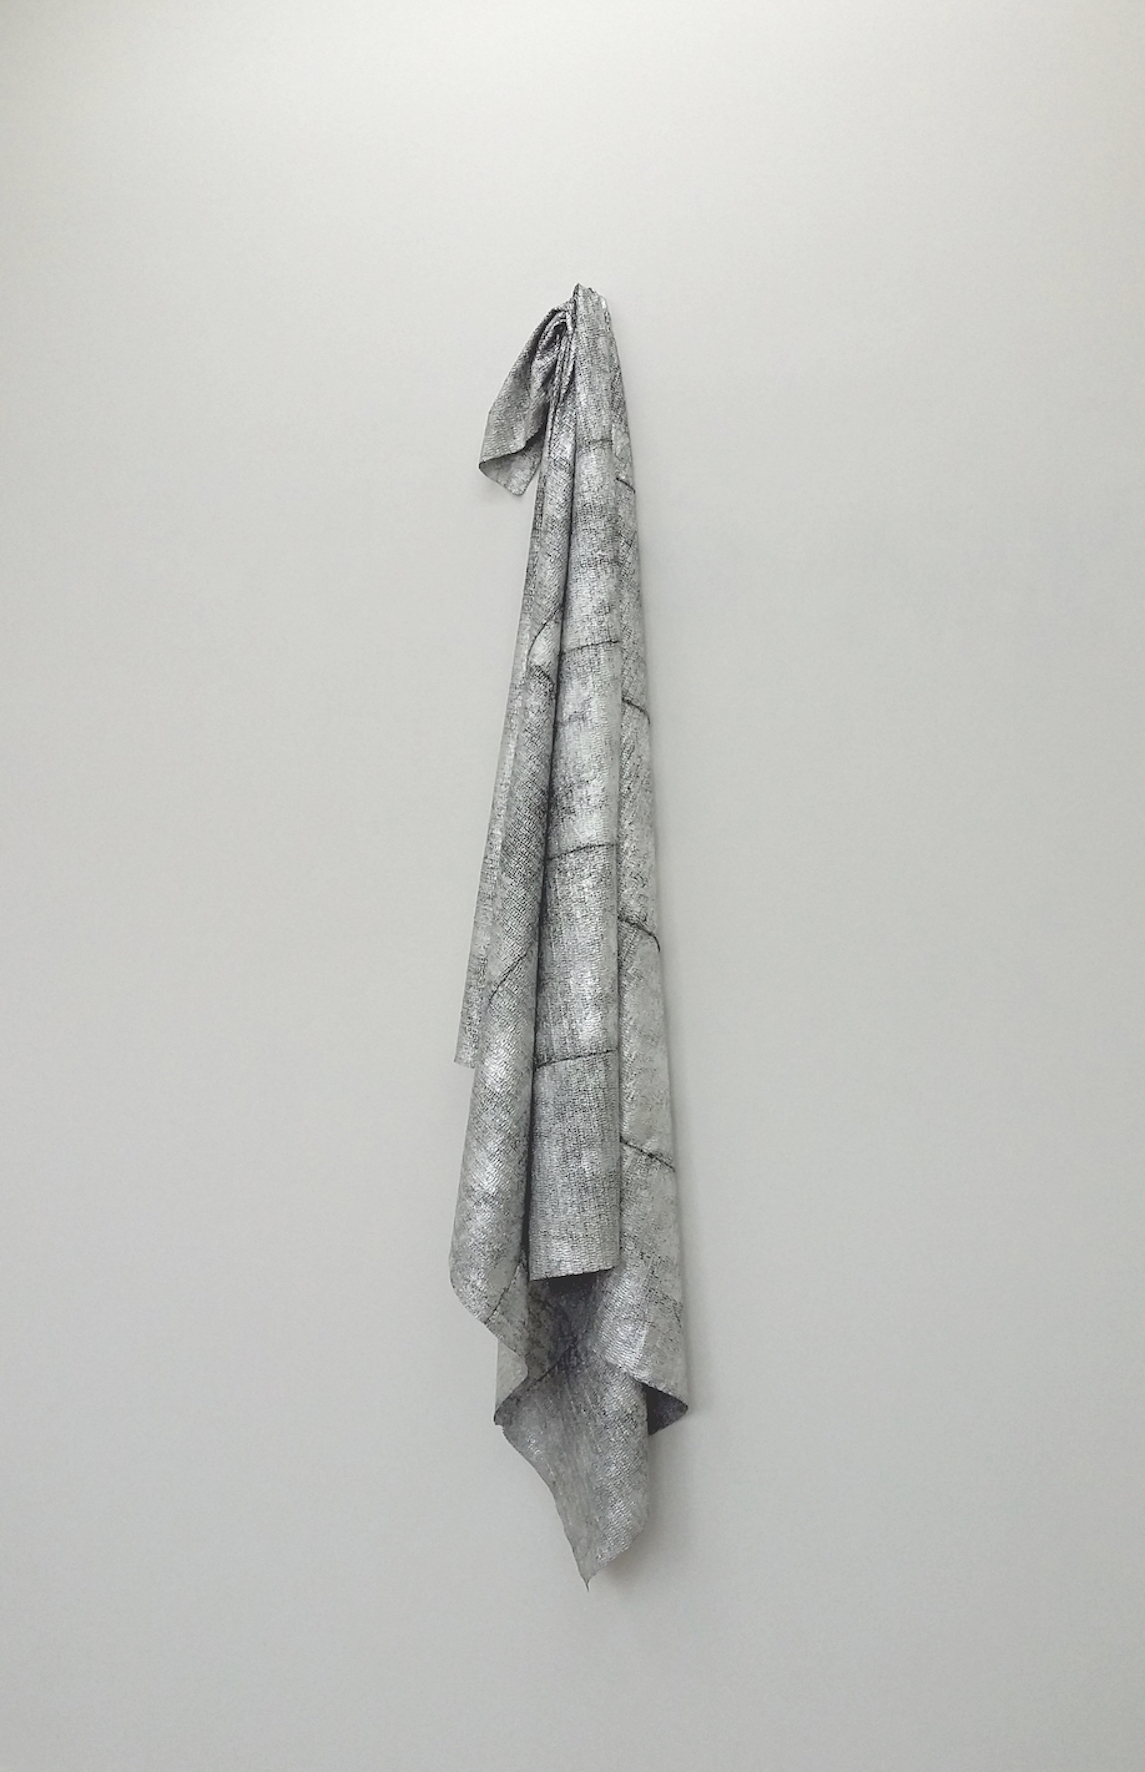 Hoodoo | Charlie Franklin, 2016 | aluminium leaf, rubber, thread | 198cm x 34cm x 16cm | image: courtesy of the artist